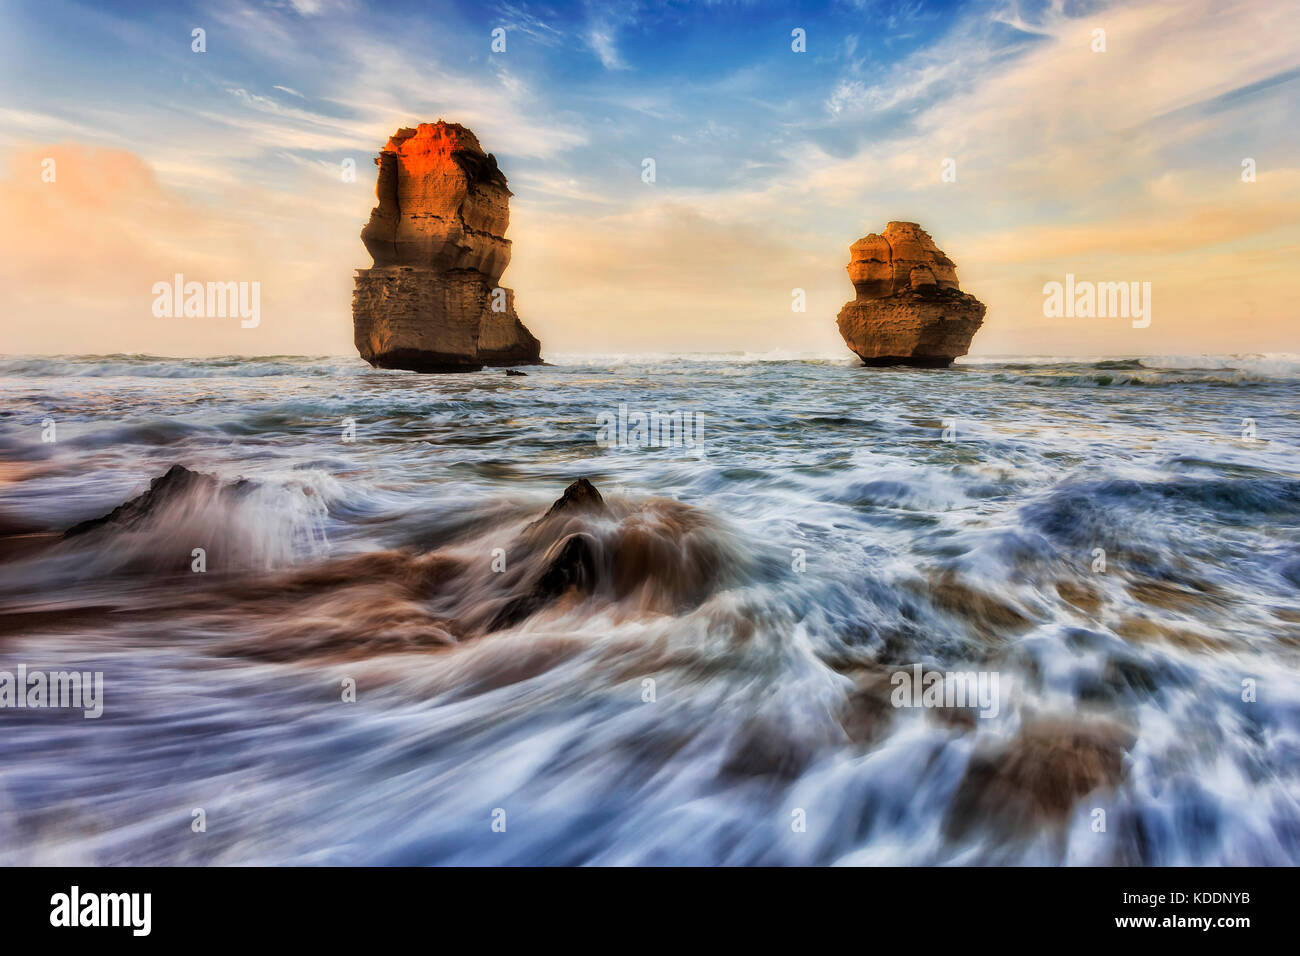 2 limestone apostles off Gibson steps beach at Twelve apostles marine park during sunrise sunlight. - Stock Image